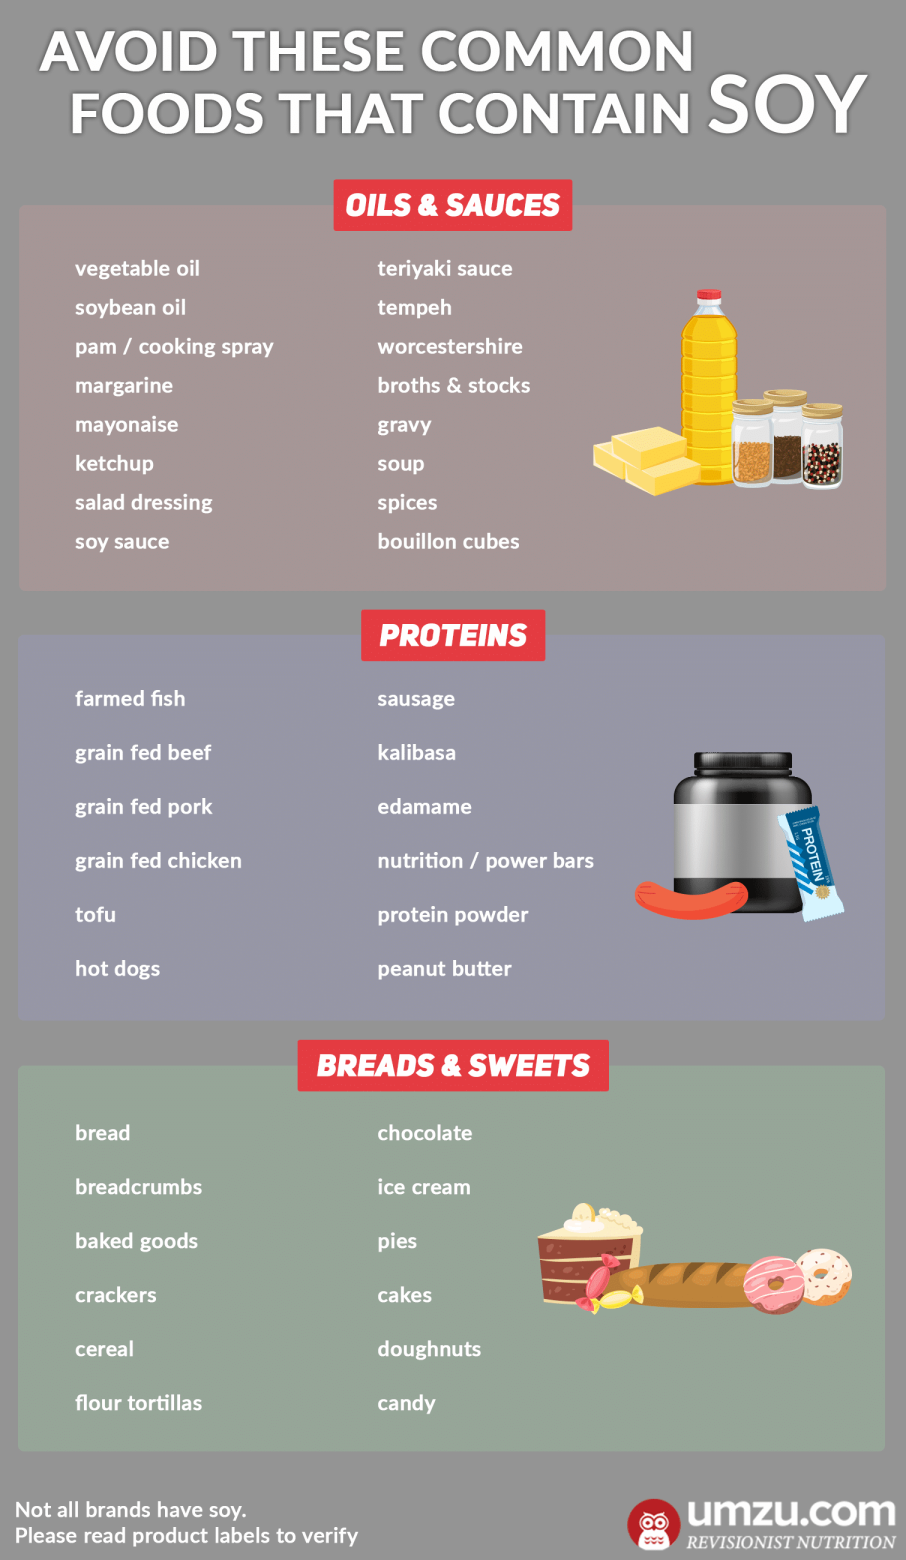 Foods that contain soy